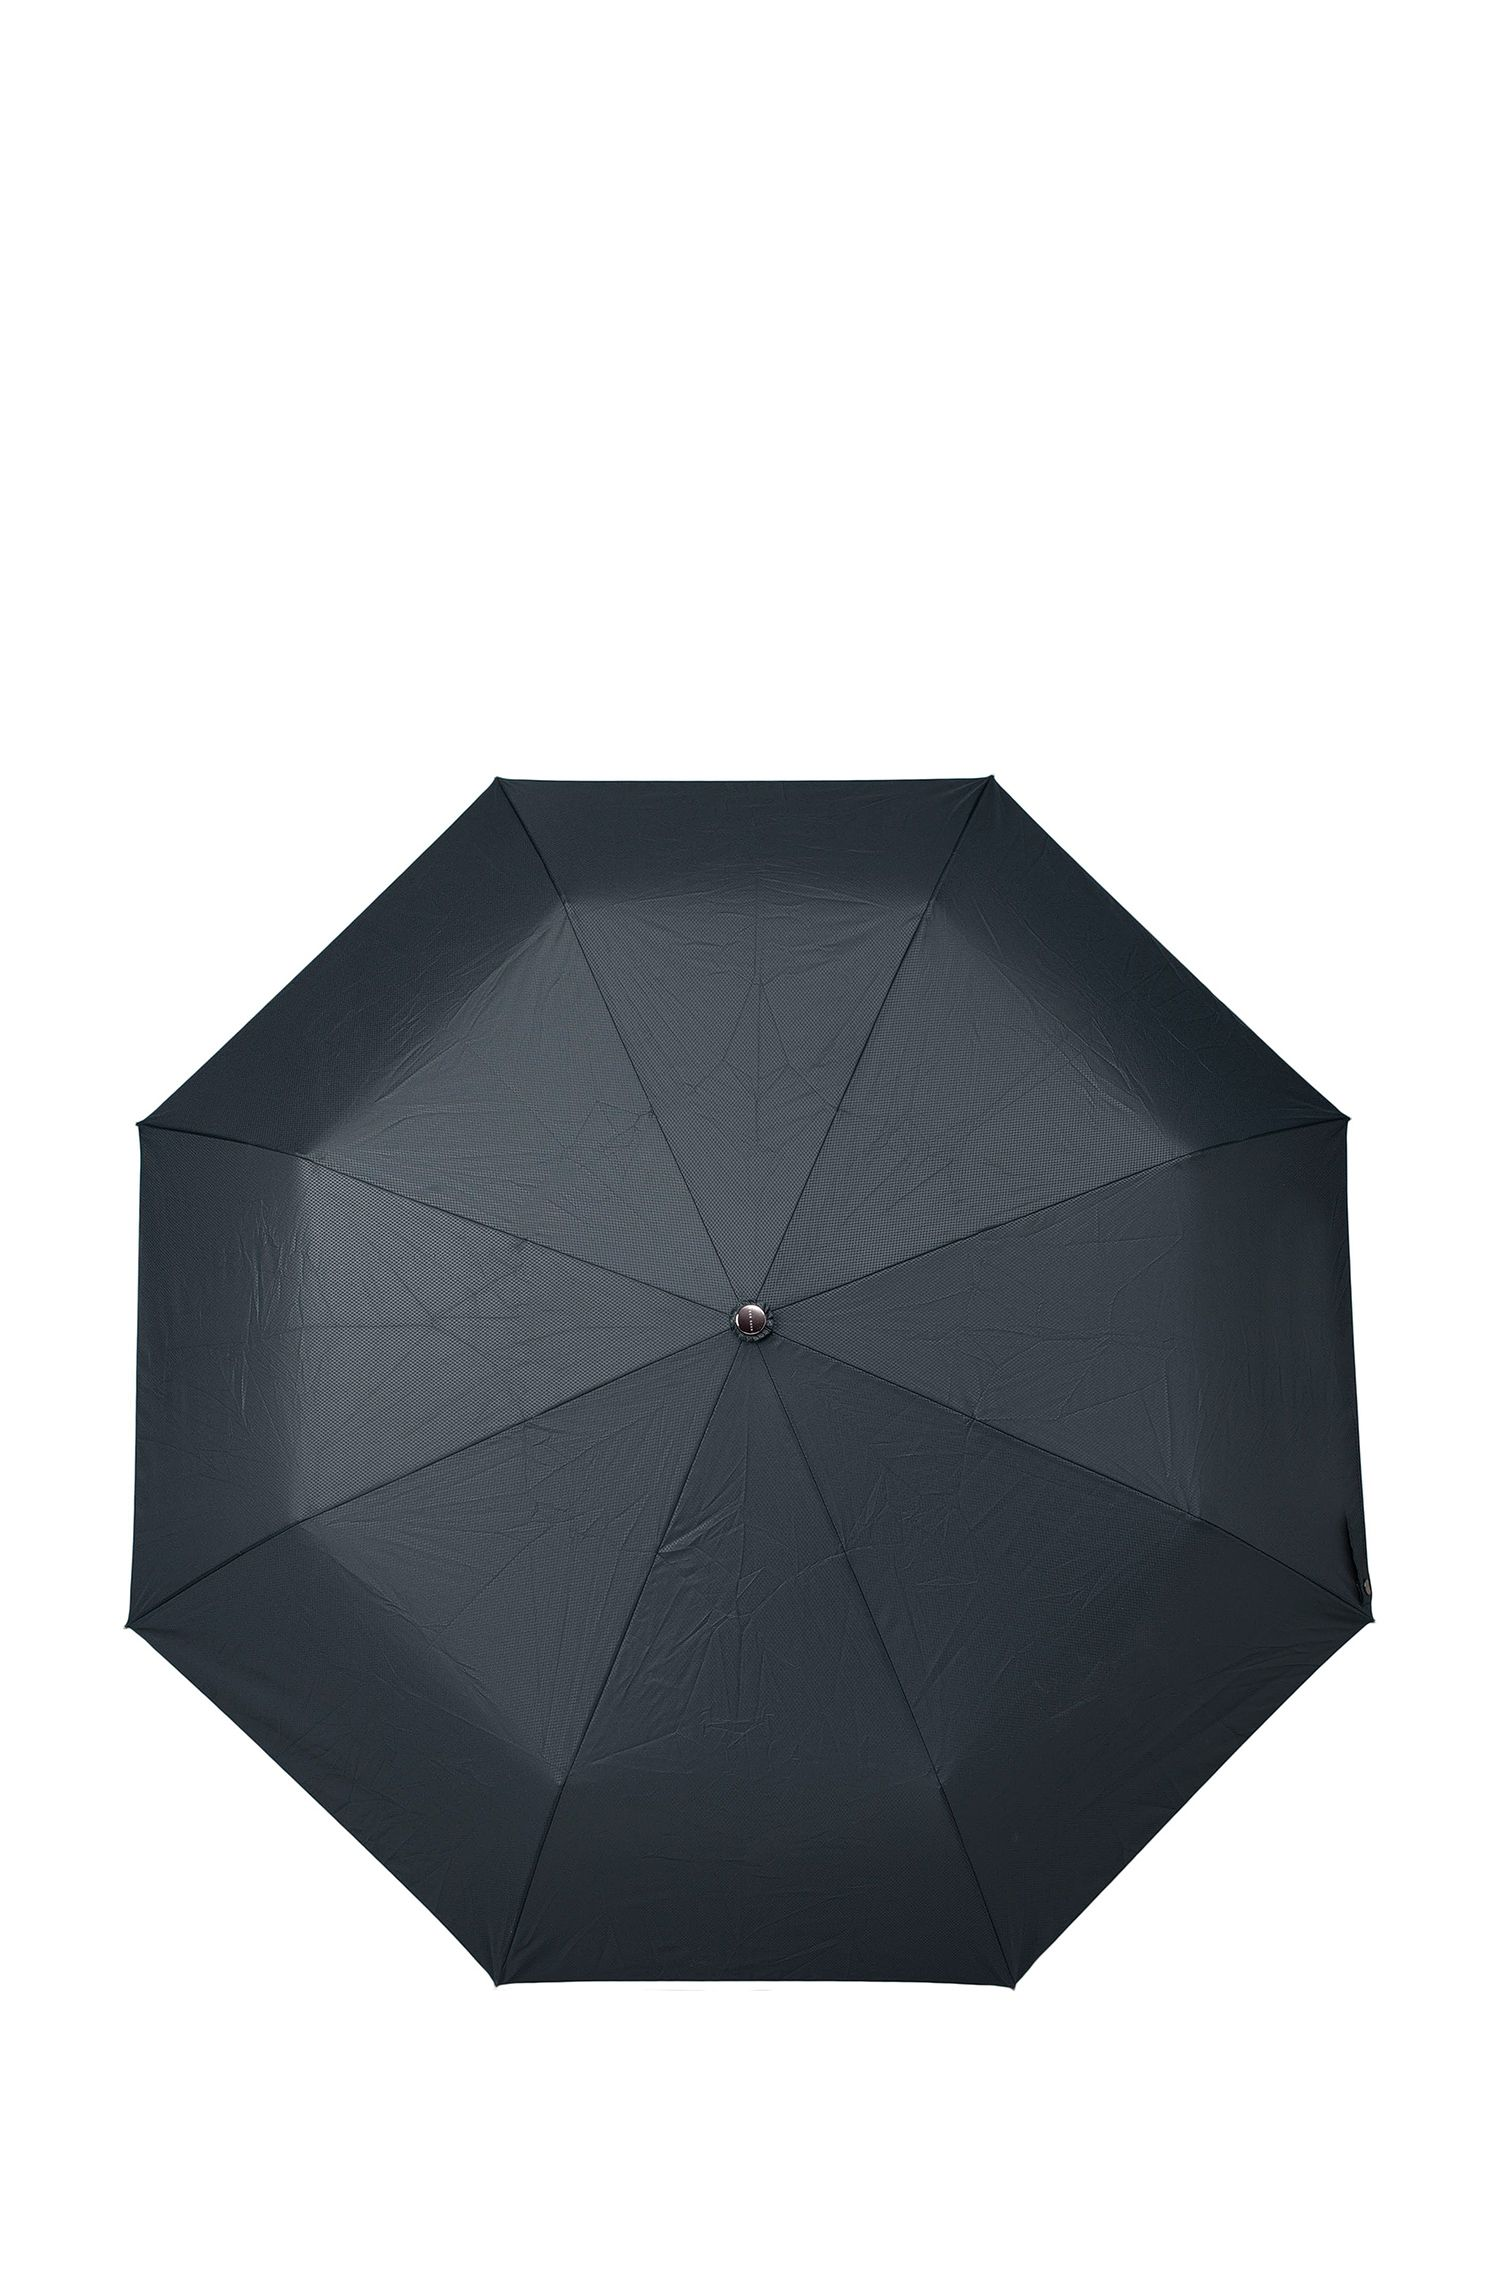 Aluminum Frame Patterned Pocket Umbrella | Umbrella New Loop Dark